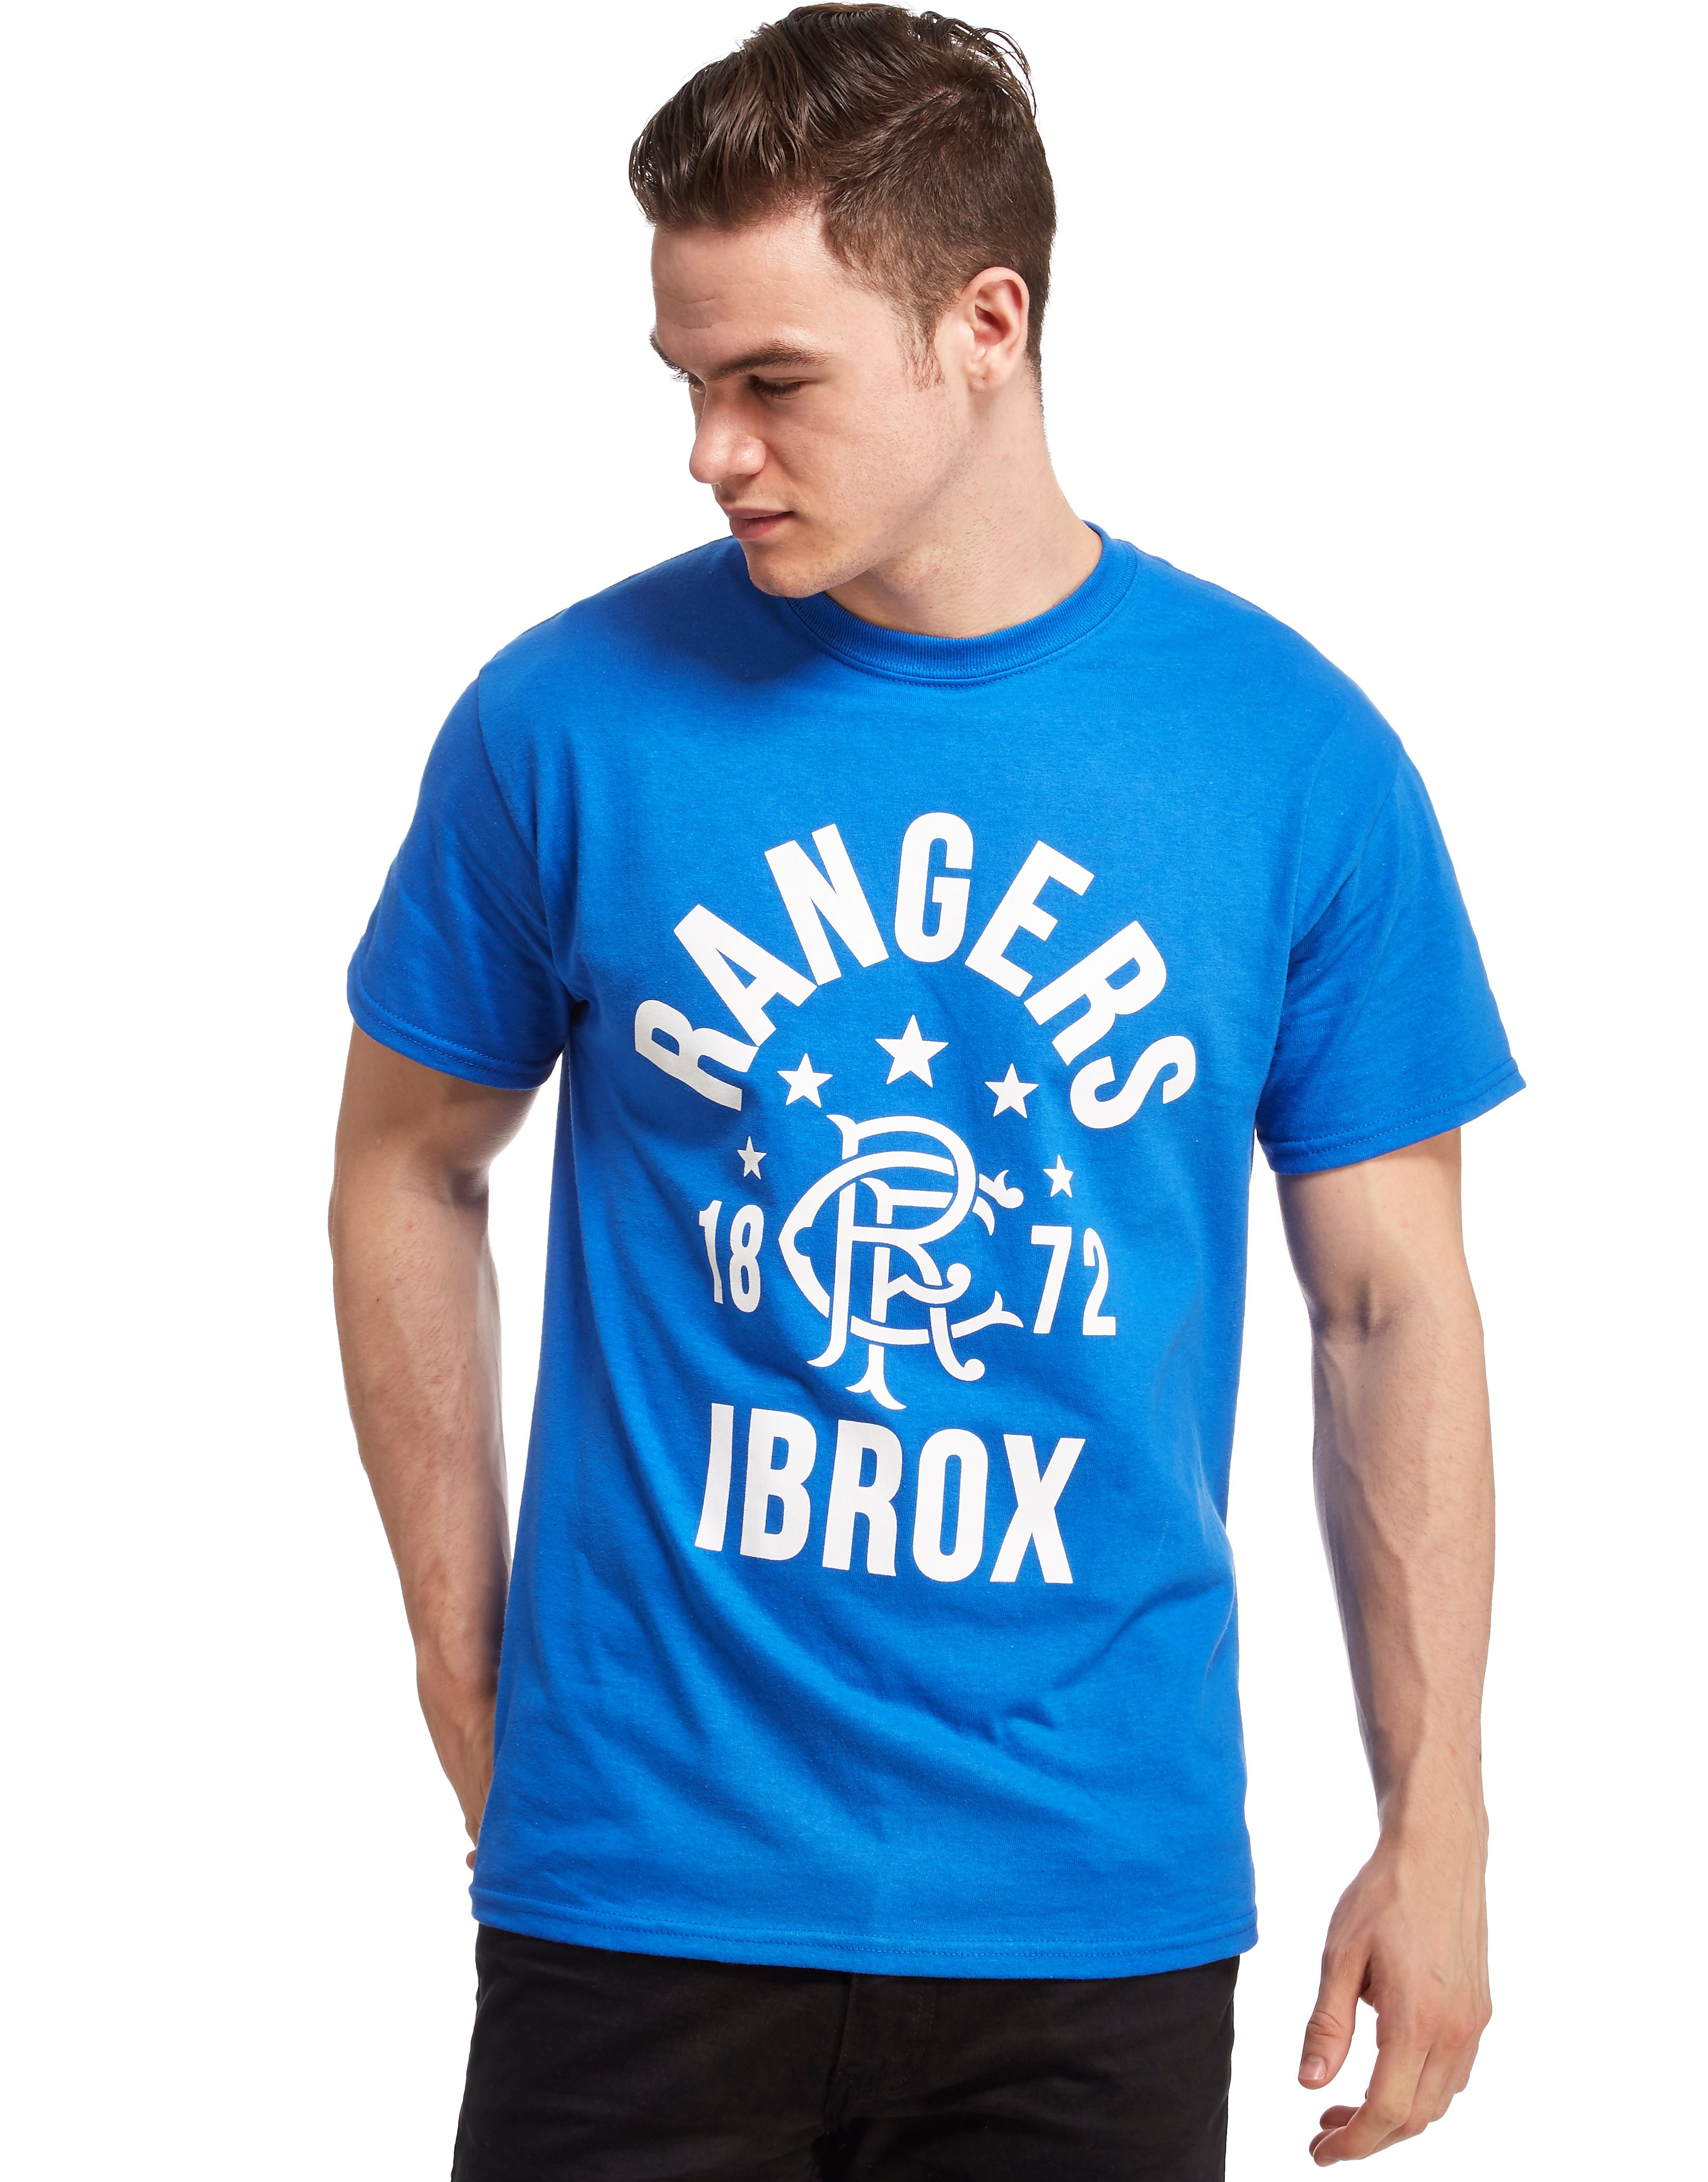 Official Team Rangers FC Ibrox T-Shirt